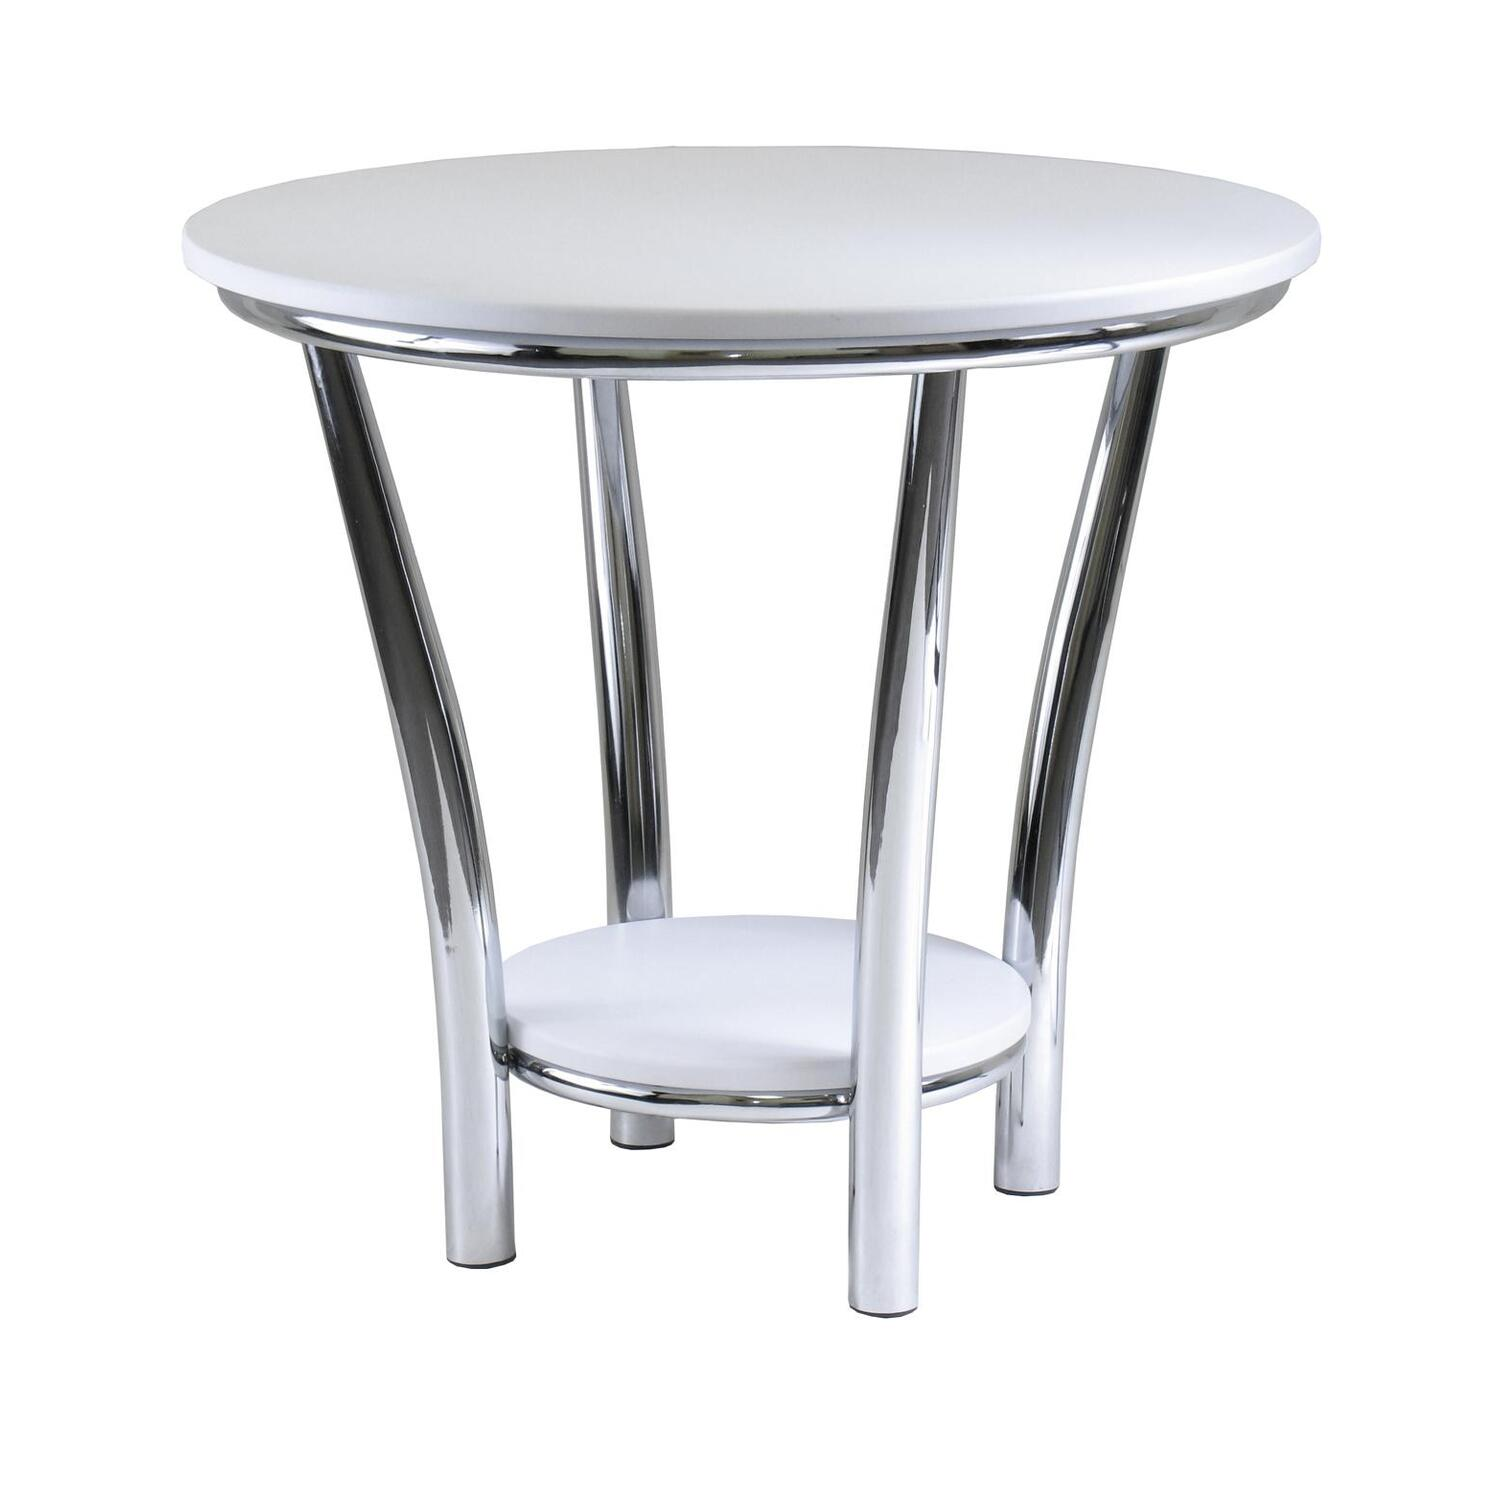 White Round Side Table : 93519mayaroundendtablewhitetopmetalle from pixelrz.com size 1400 x 1565 jpeg 90kB